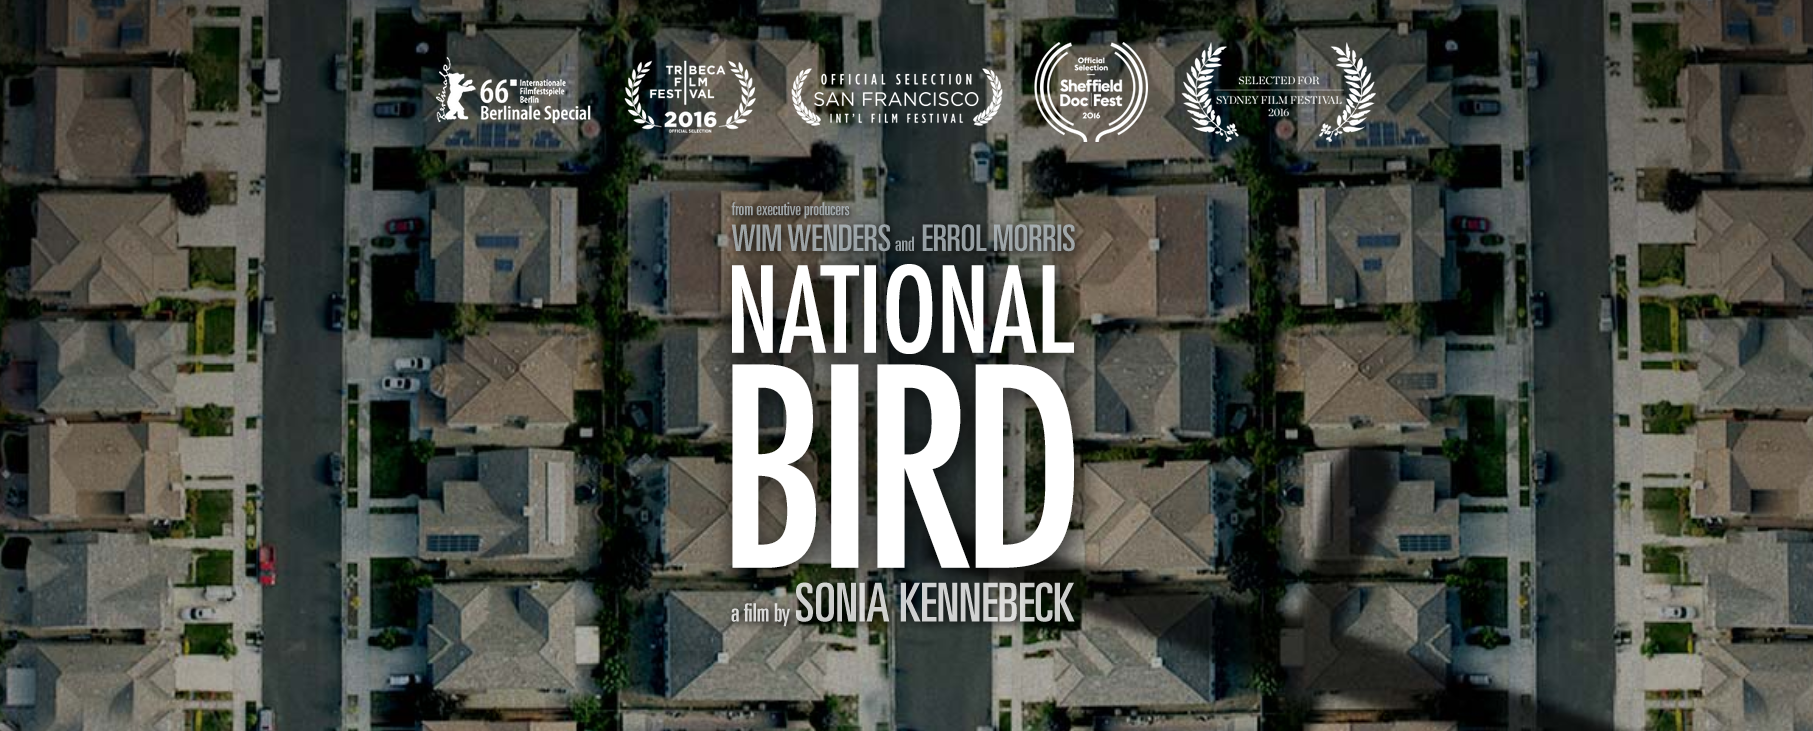 Film Showing: National Bird.  (Drone Warfare and Whistleblowers) @ Omni Commons ballroom | Oakland | California | United States